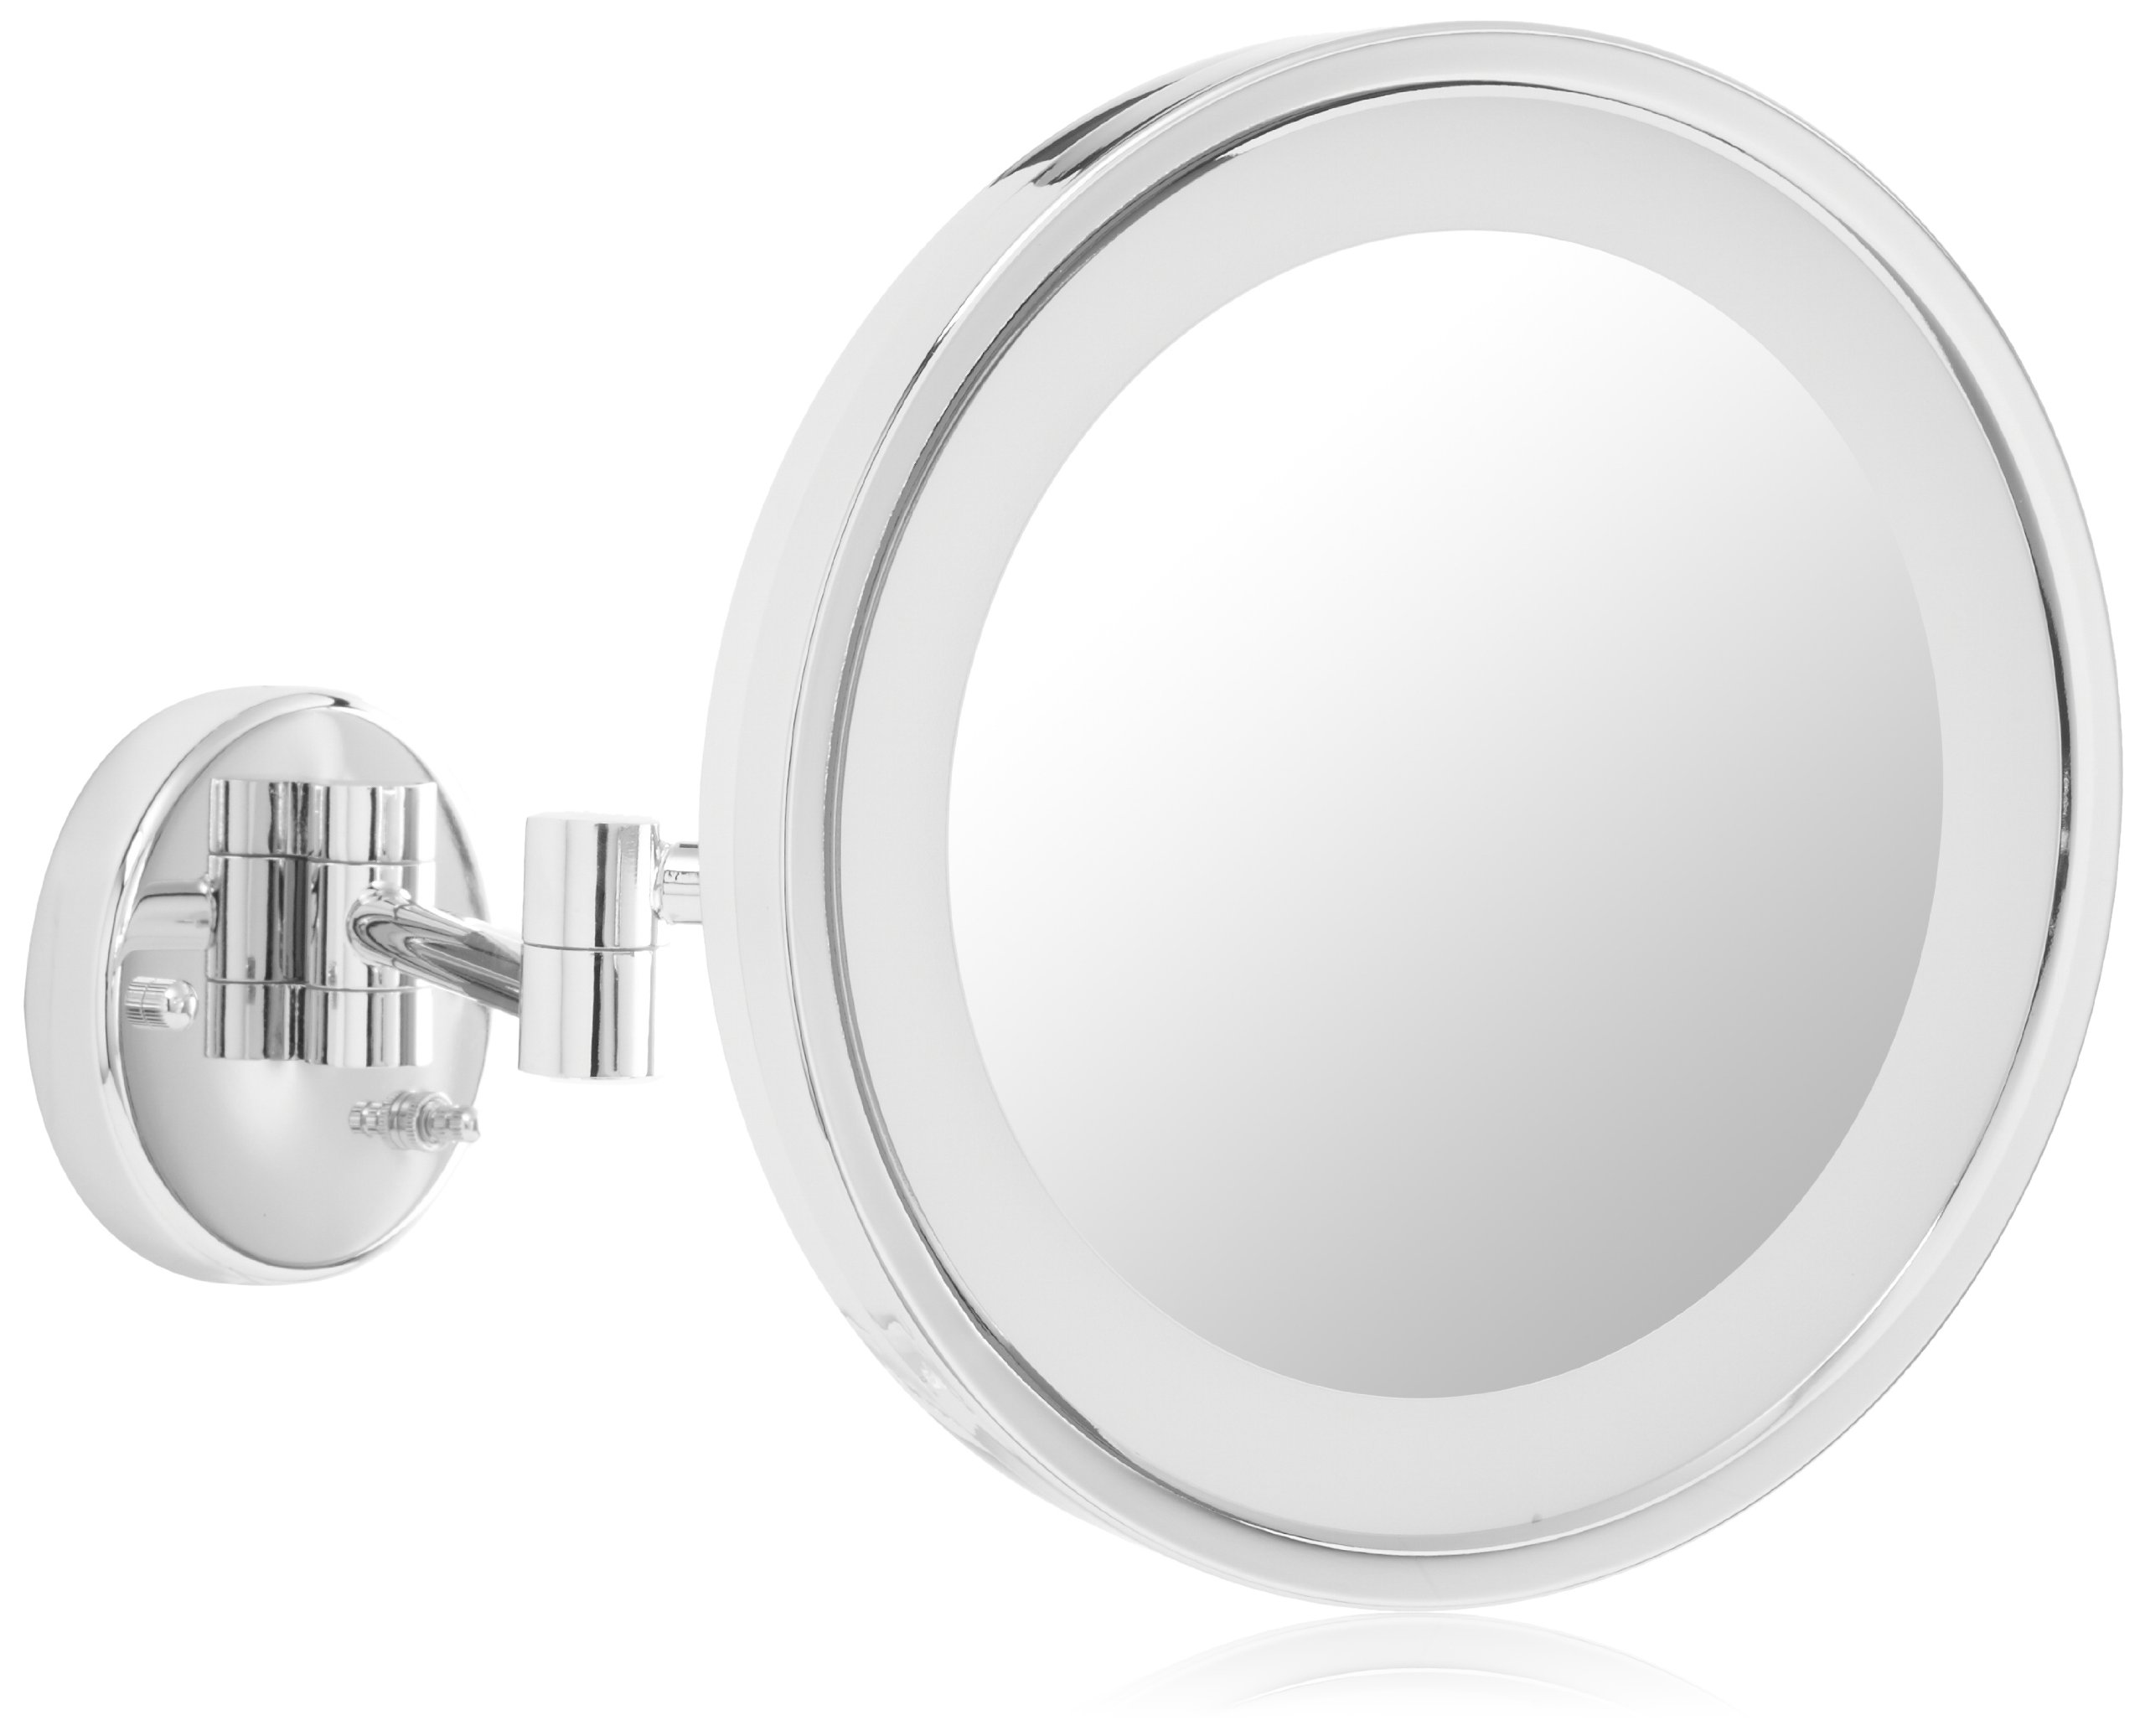 Jerdon HL1016CL 9.5-Inch LED Lighted Wall Mount Makeup Mirror with 5x Magnification, Chrome Finish by Jerdon